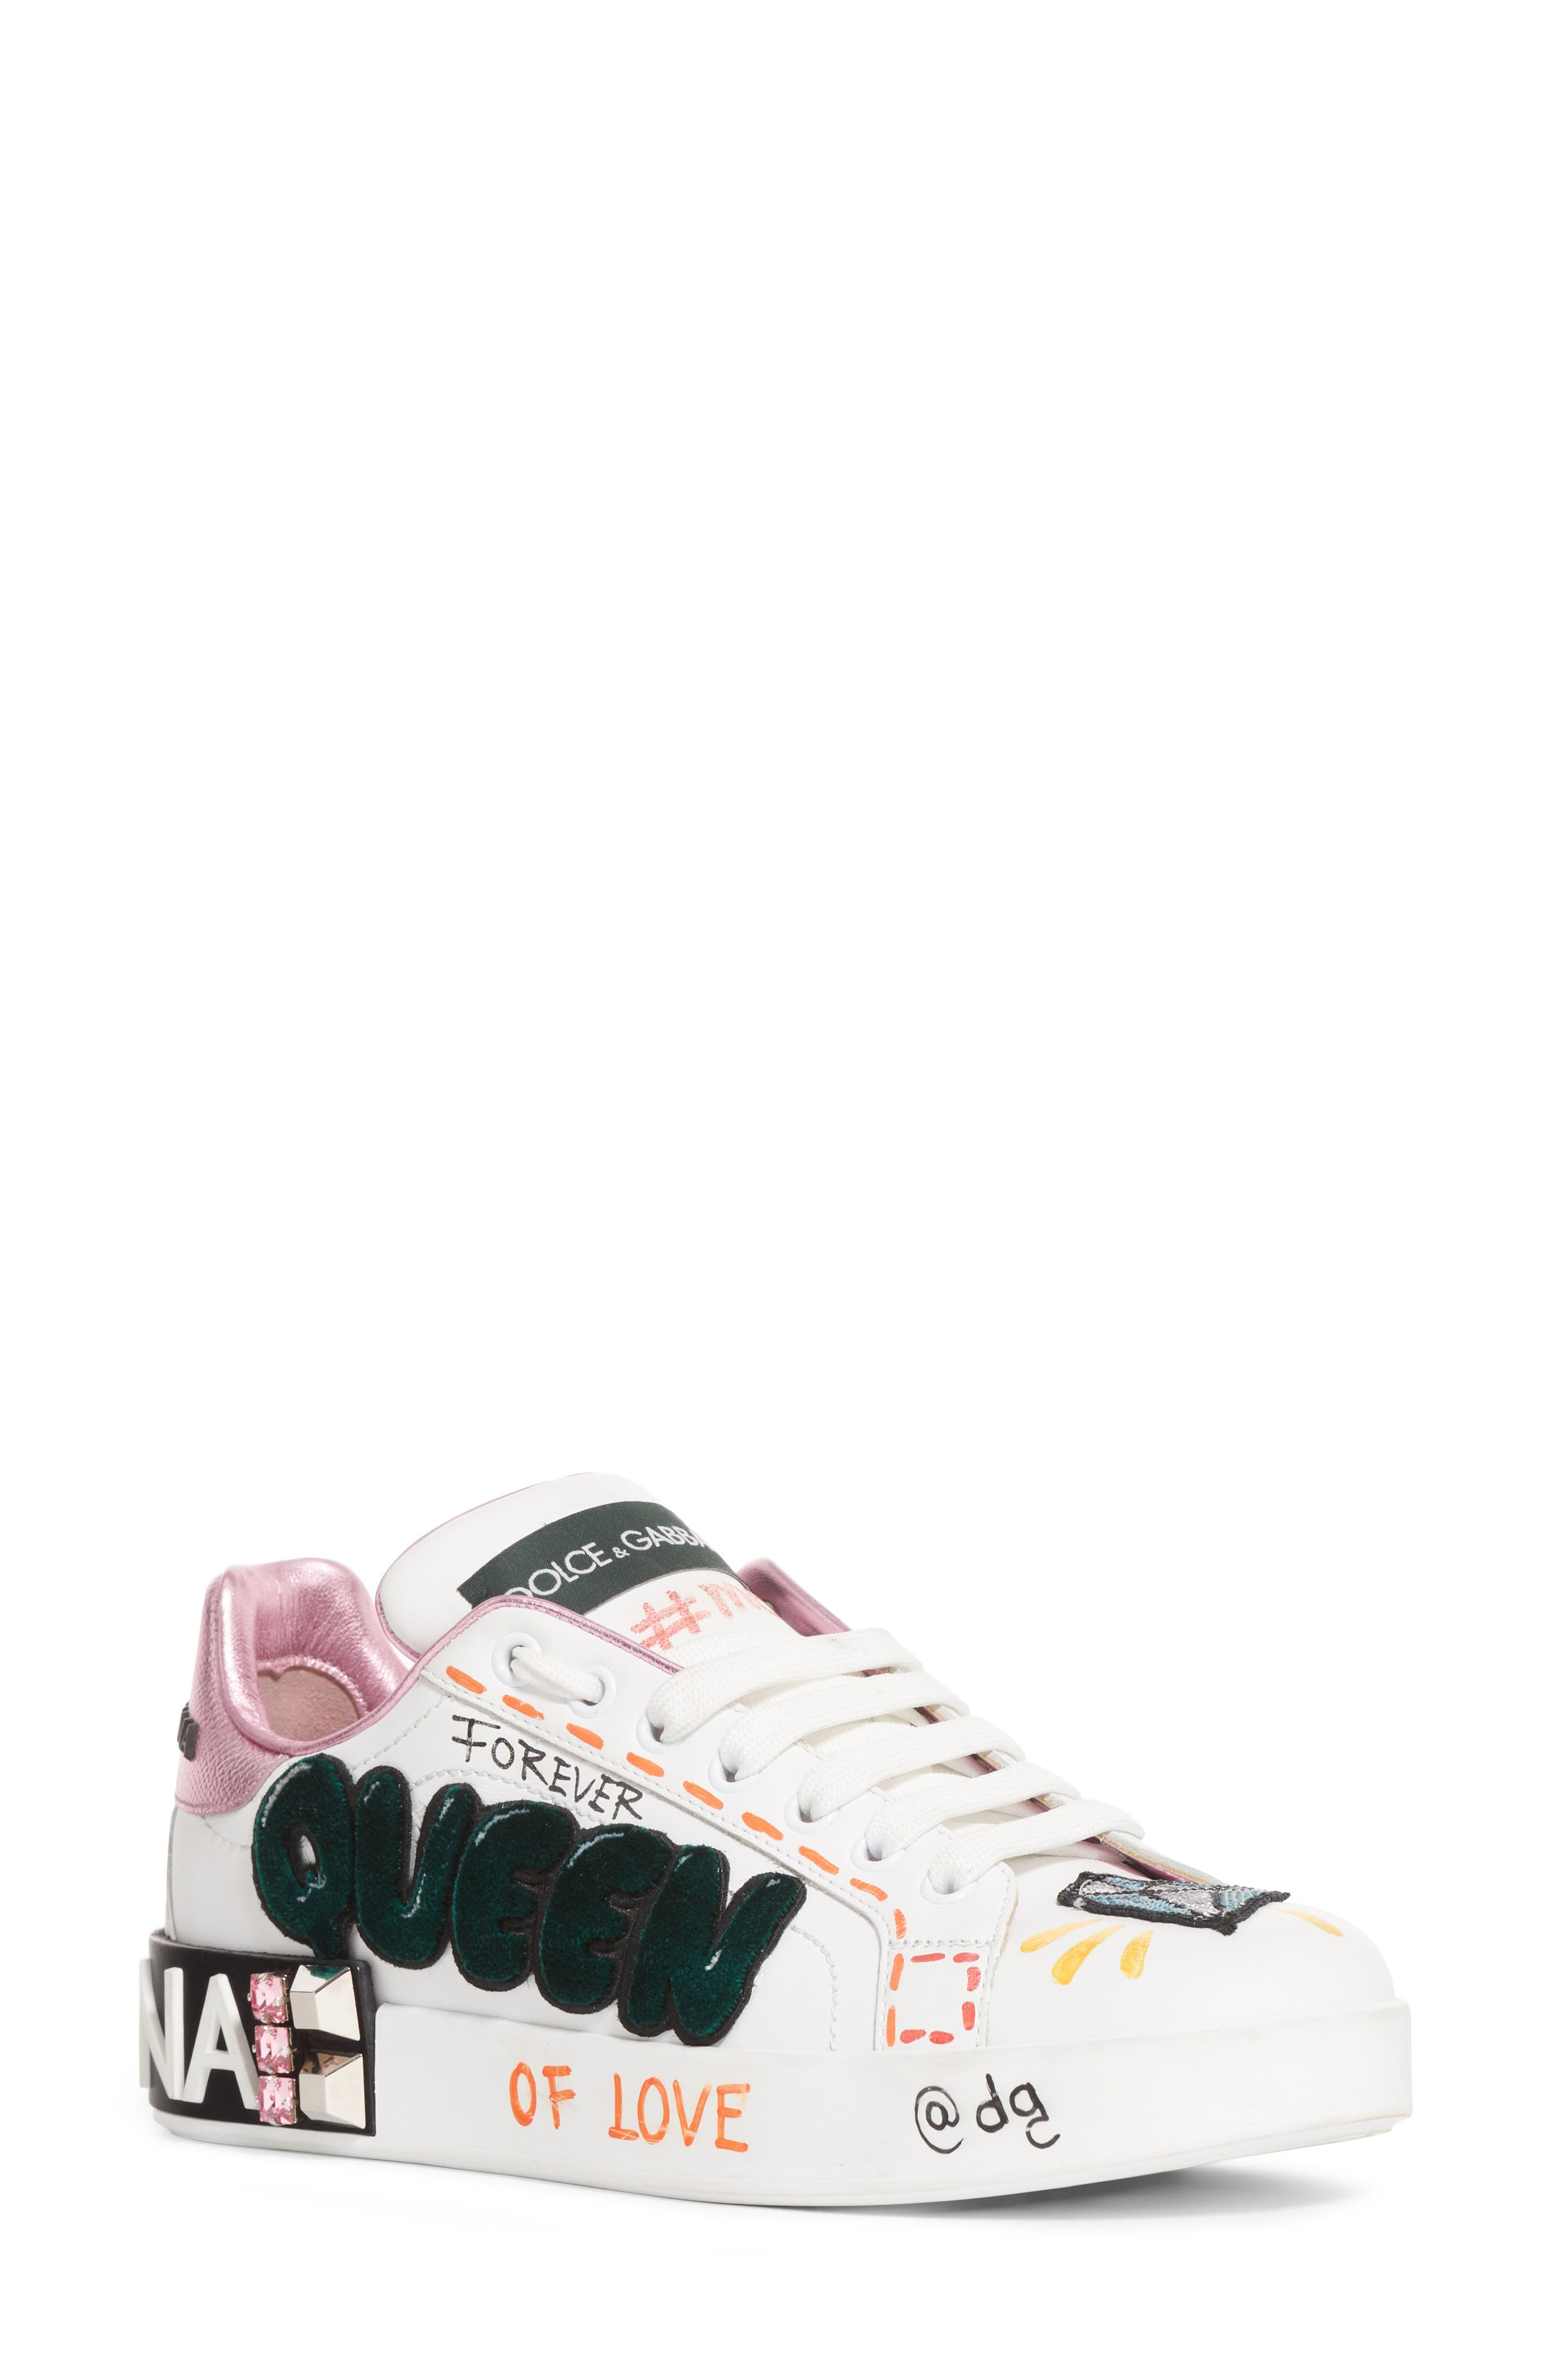 DOLCE&GABBANA Queen Graffiti Lace-Up Sneaker, Main, color, 110